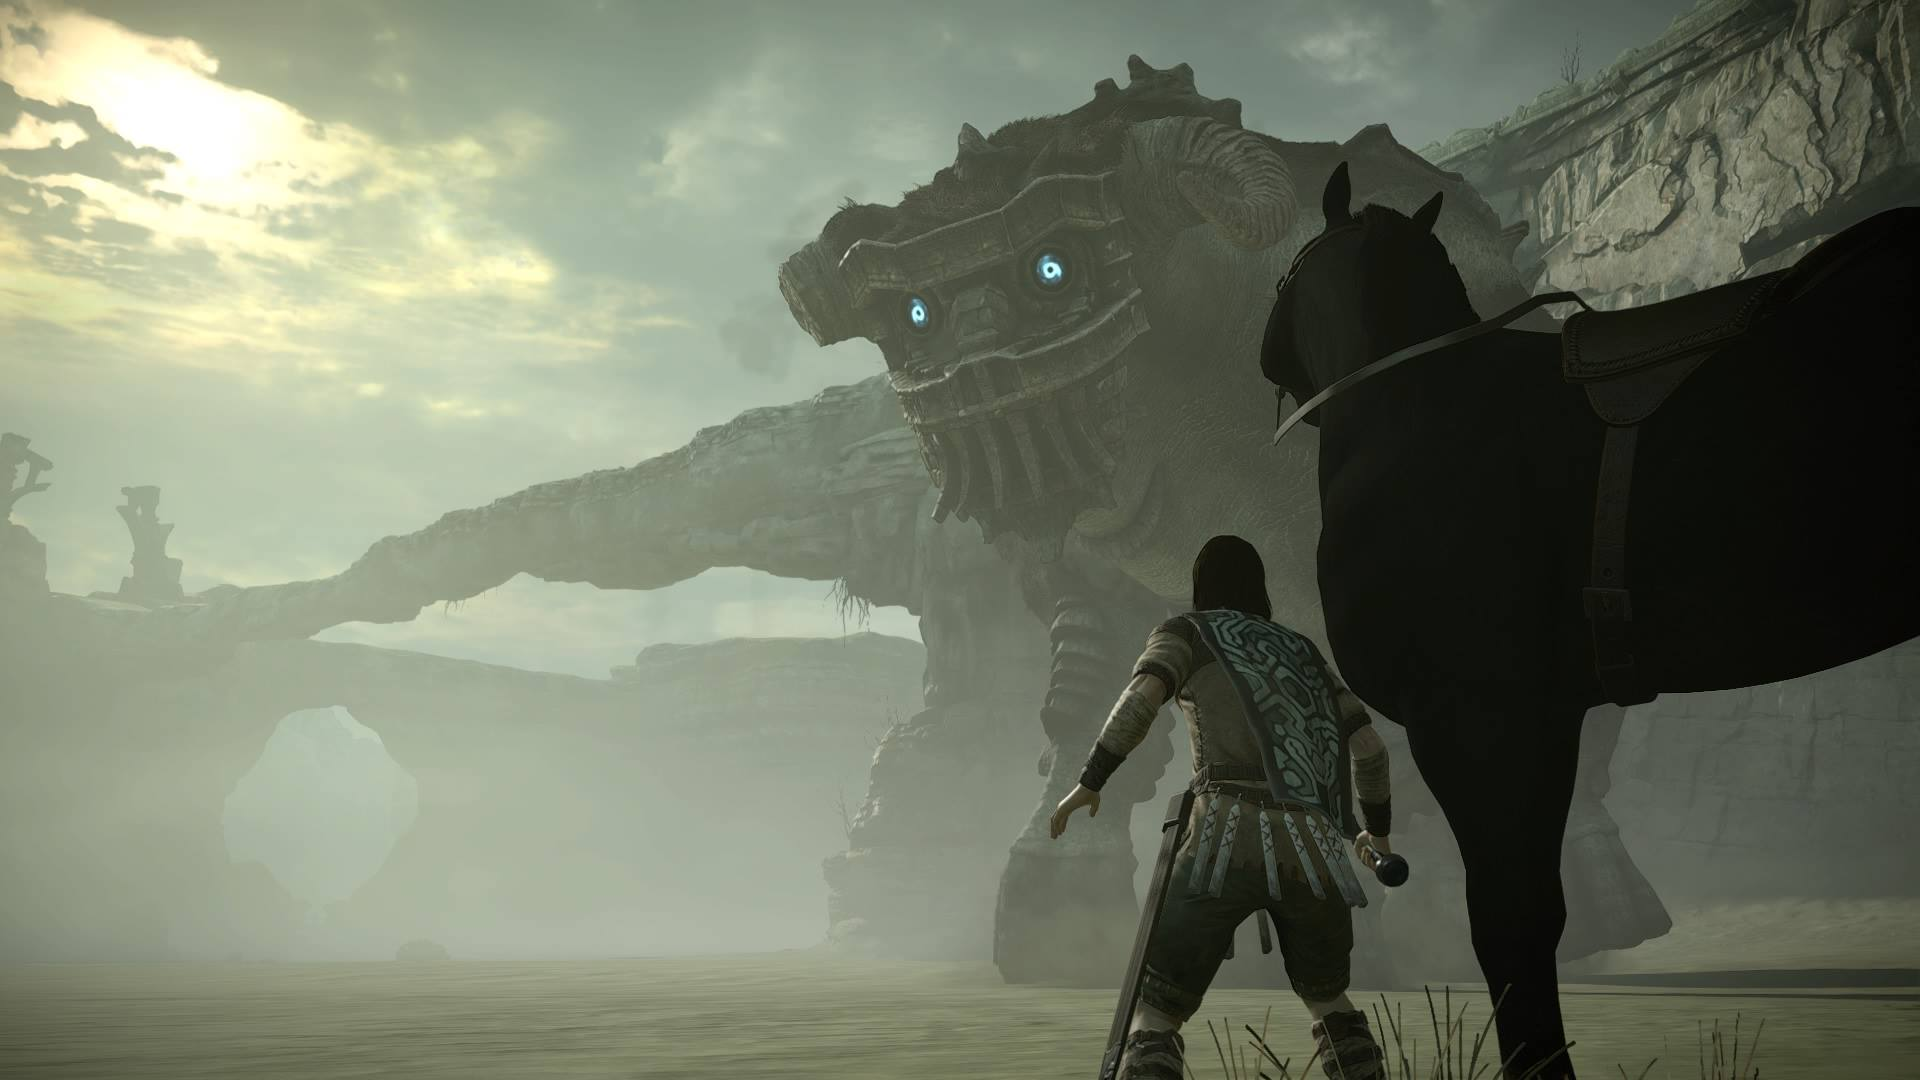 Shadow of the Colossus image 4